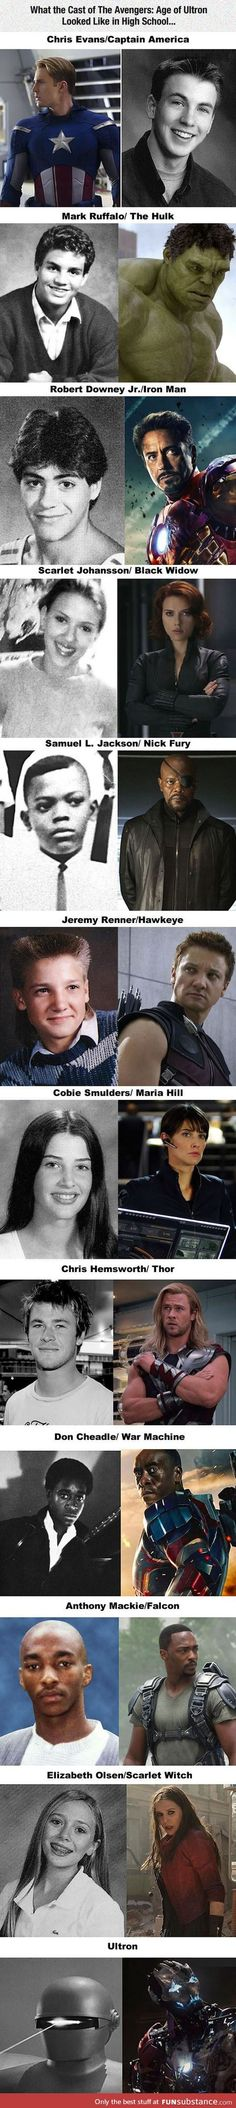 Cast of The Avengers In High School